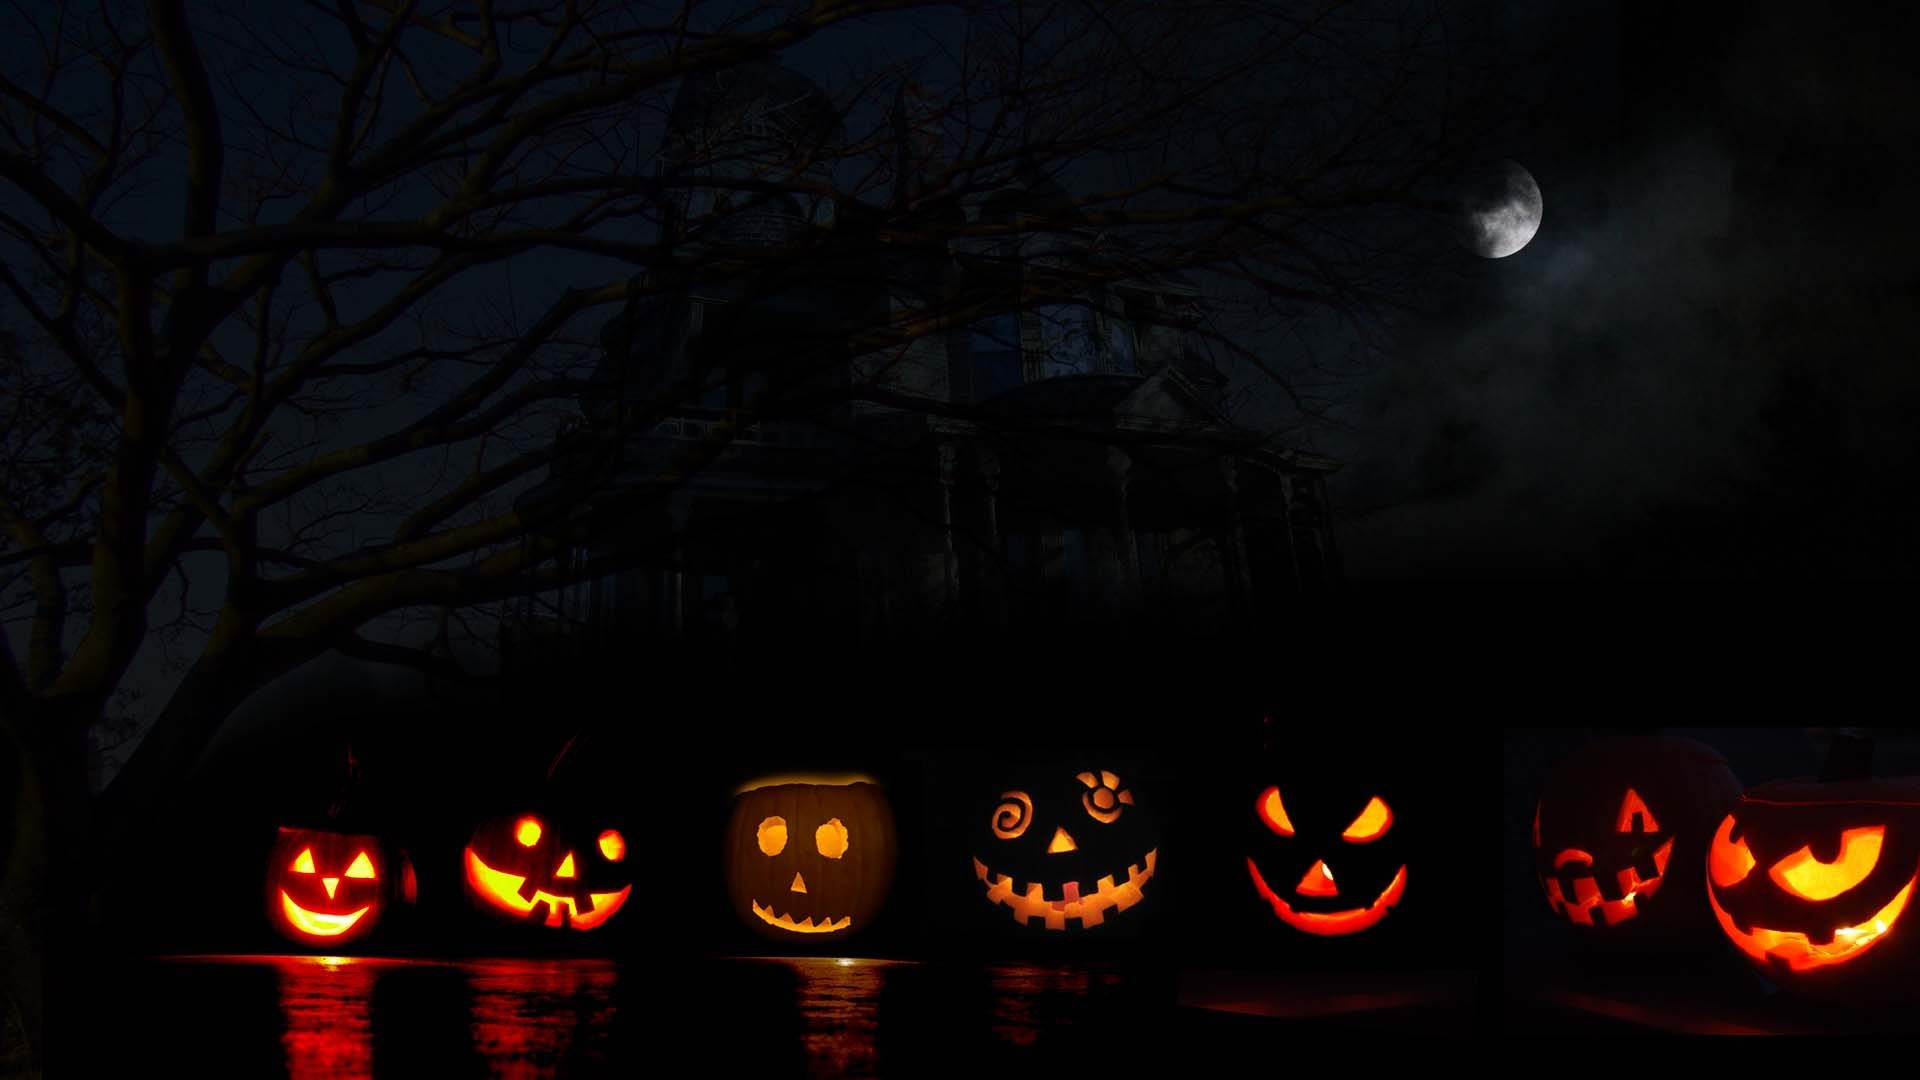 Halloween Background Wallpapers HD Backgrounds, Images, Pics … Halloween  Background Wallpapers HD Backgrounds Images Pics